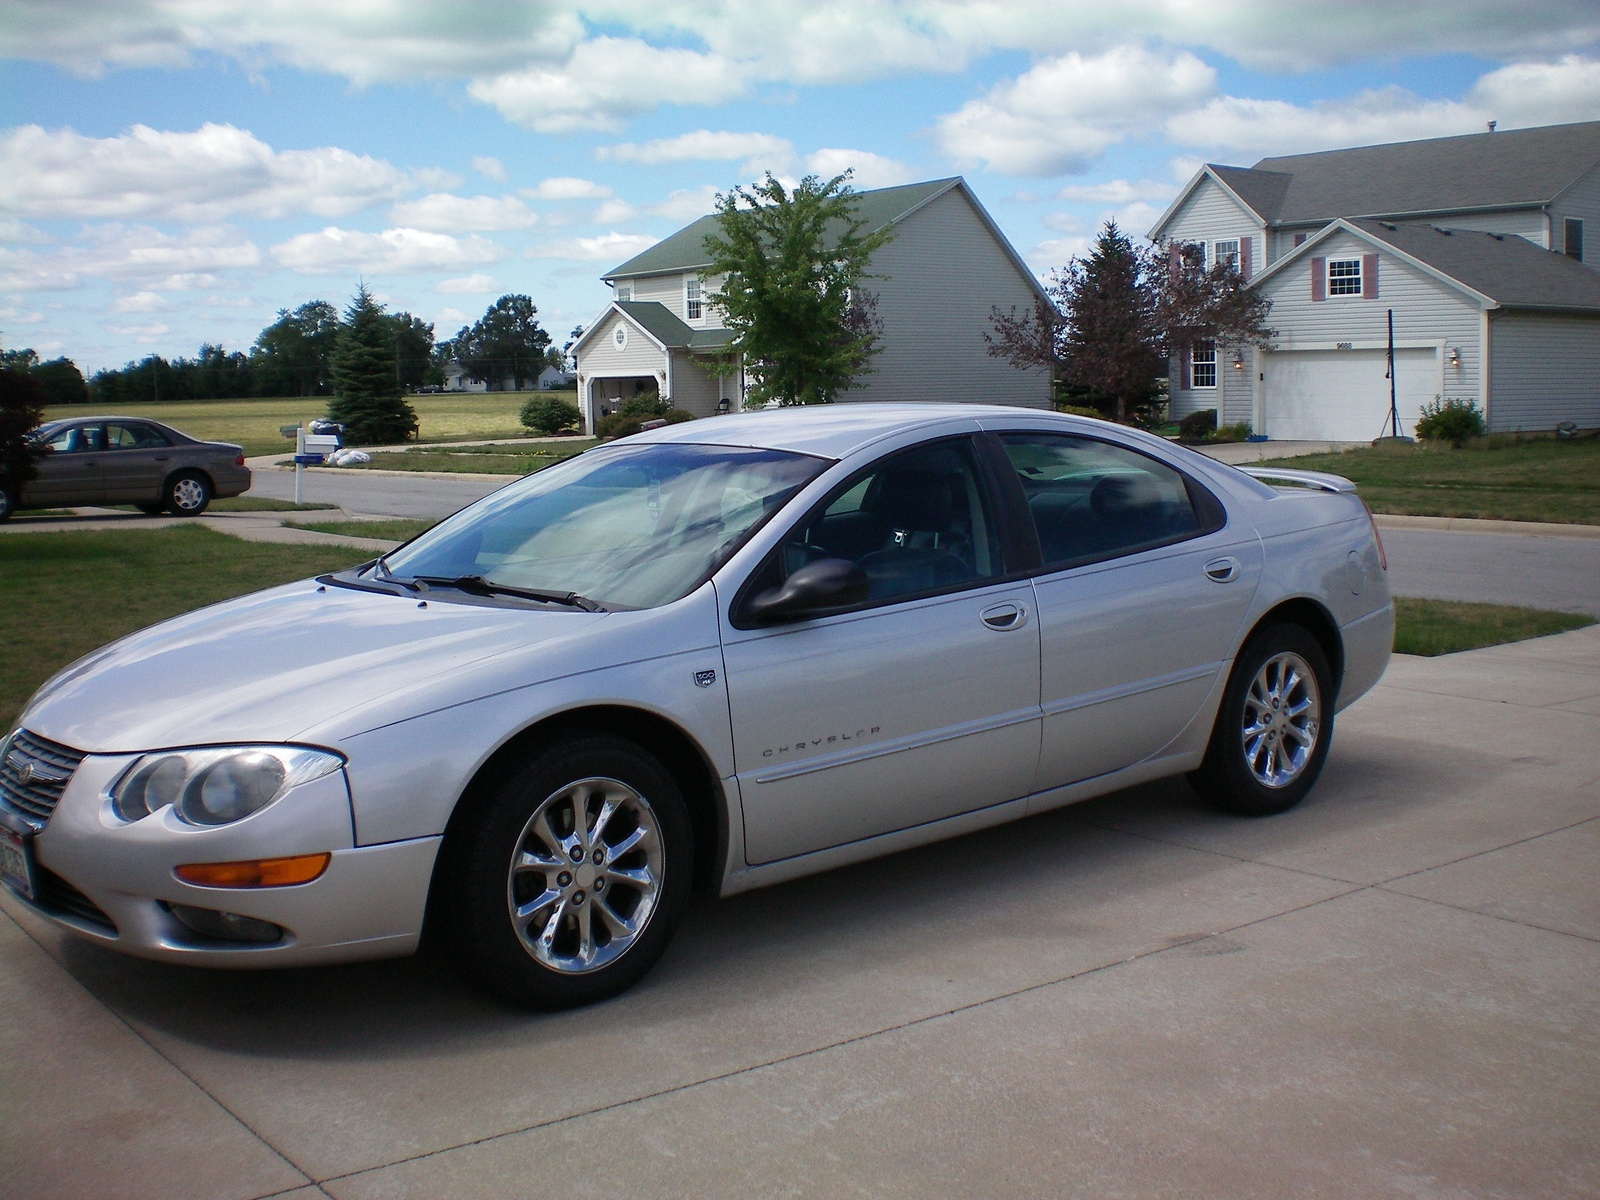 2000 Chrysler 300m #3